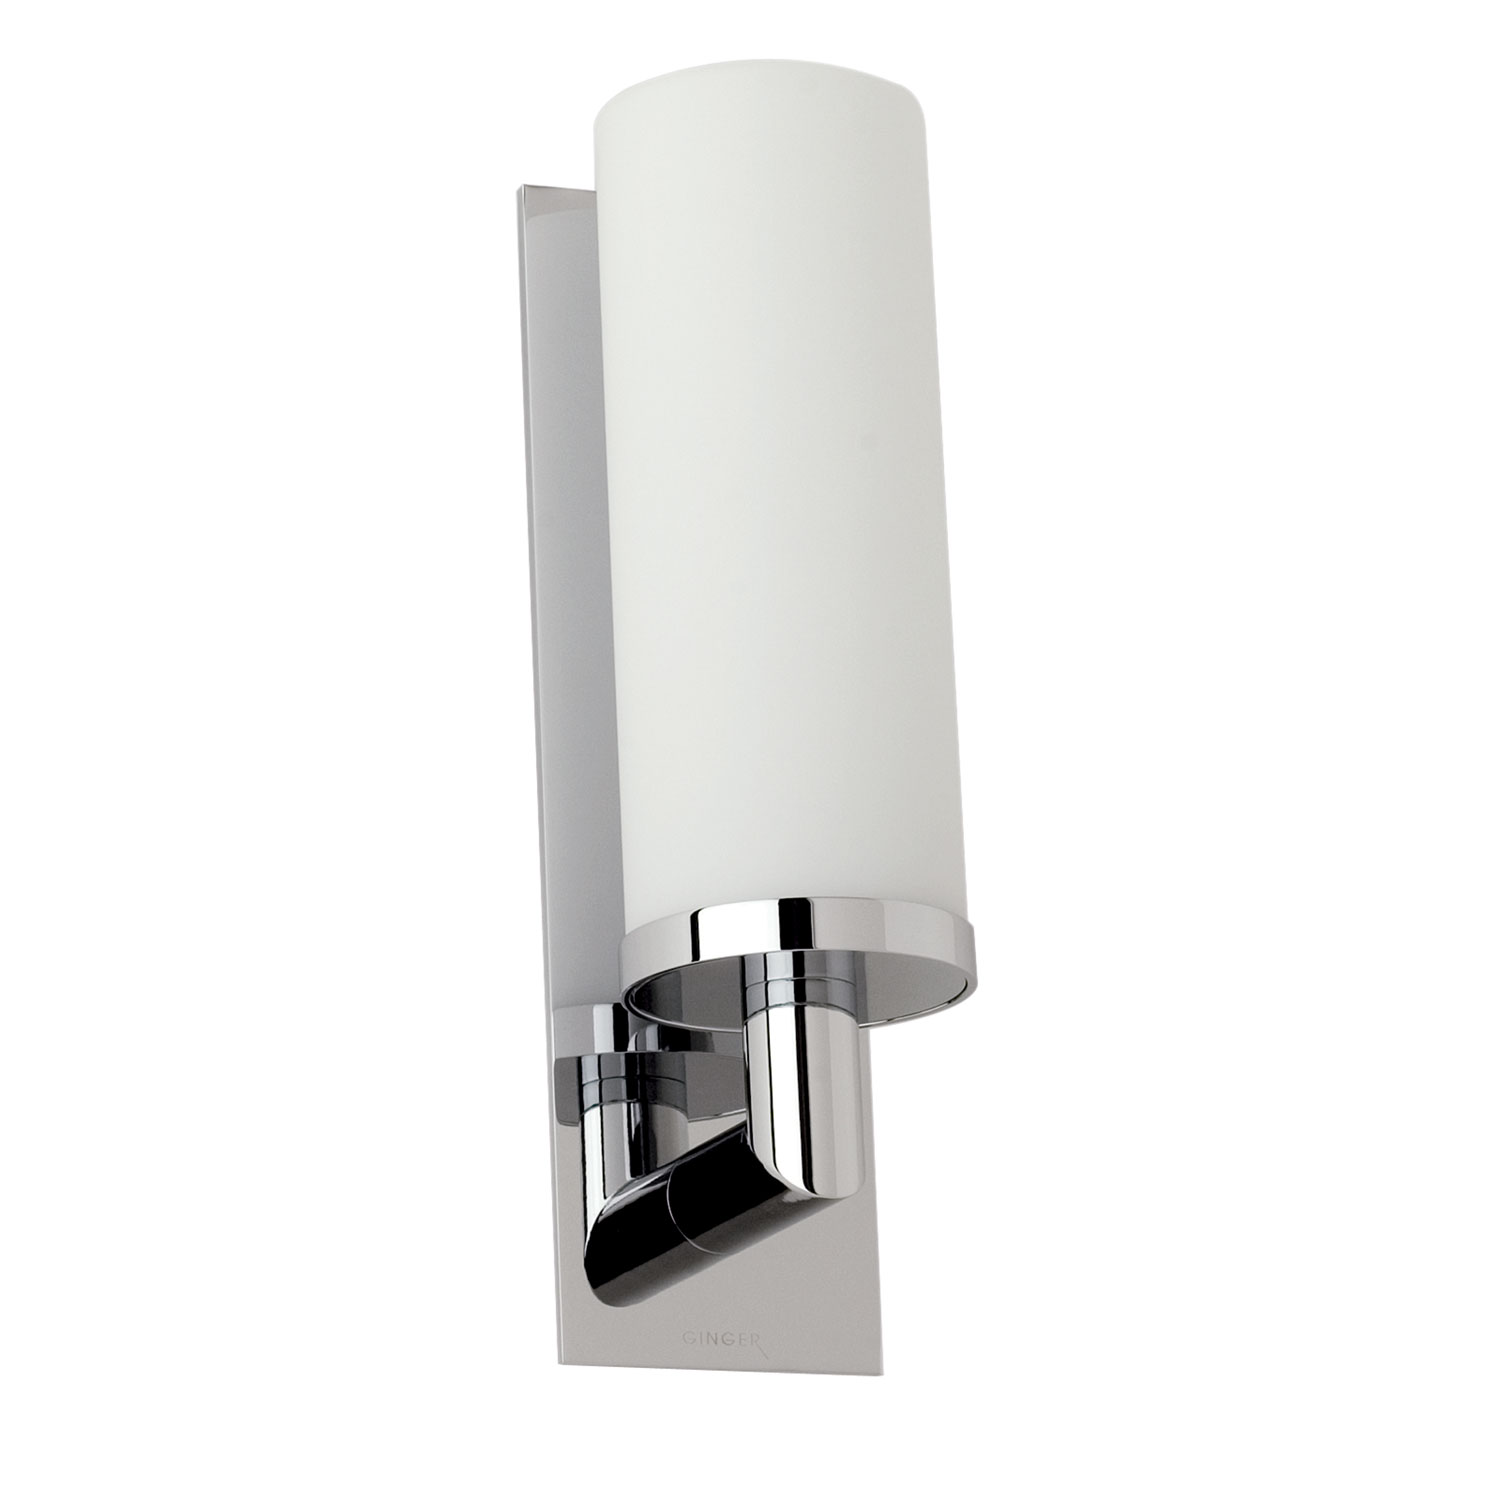 Surface Vanity Wall Sconce By Ginger | 2881/pc Part 13